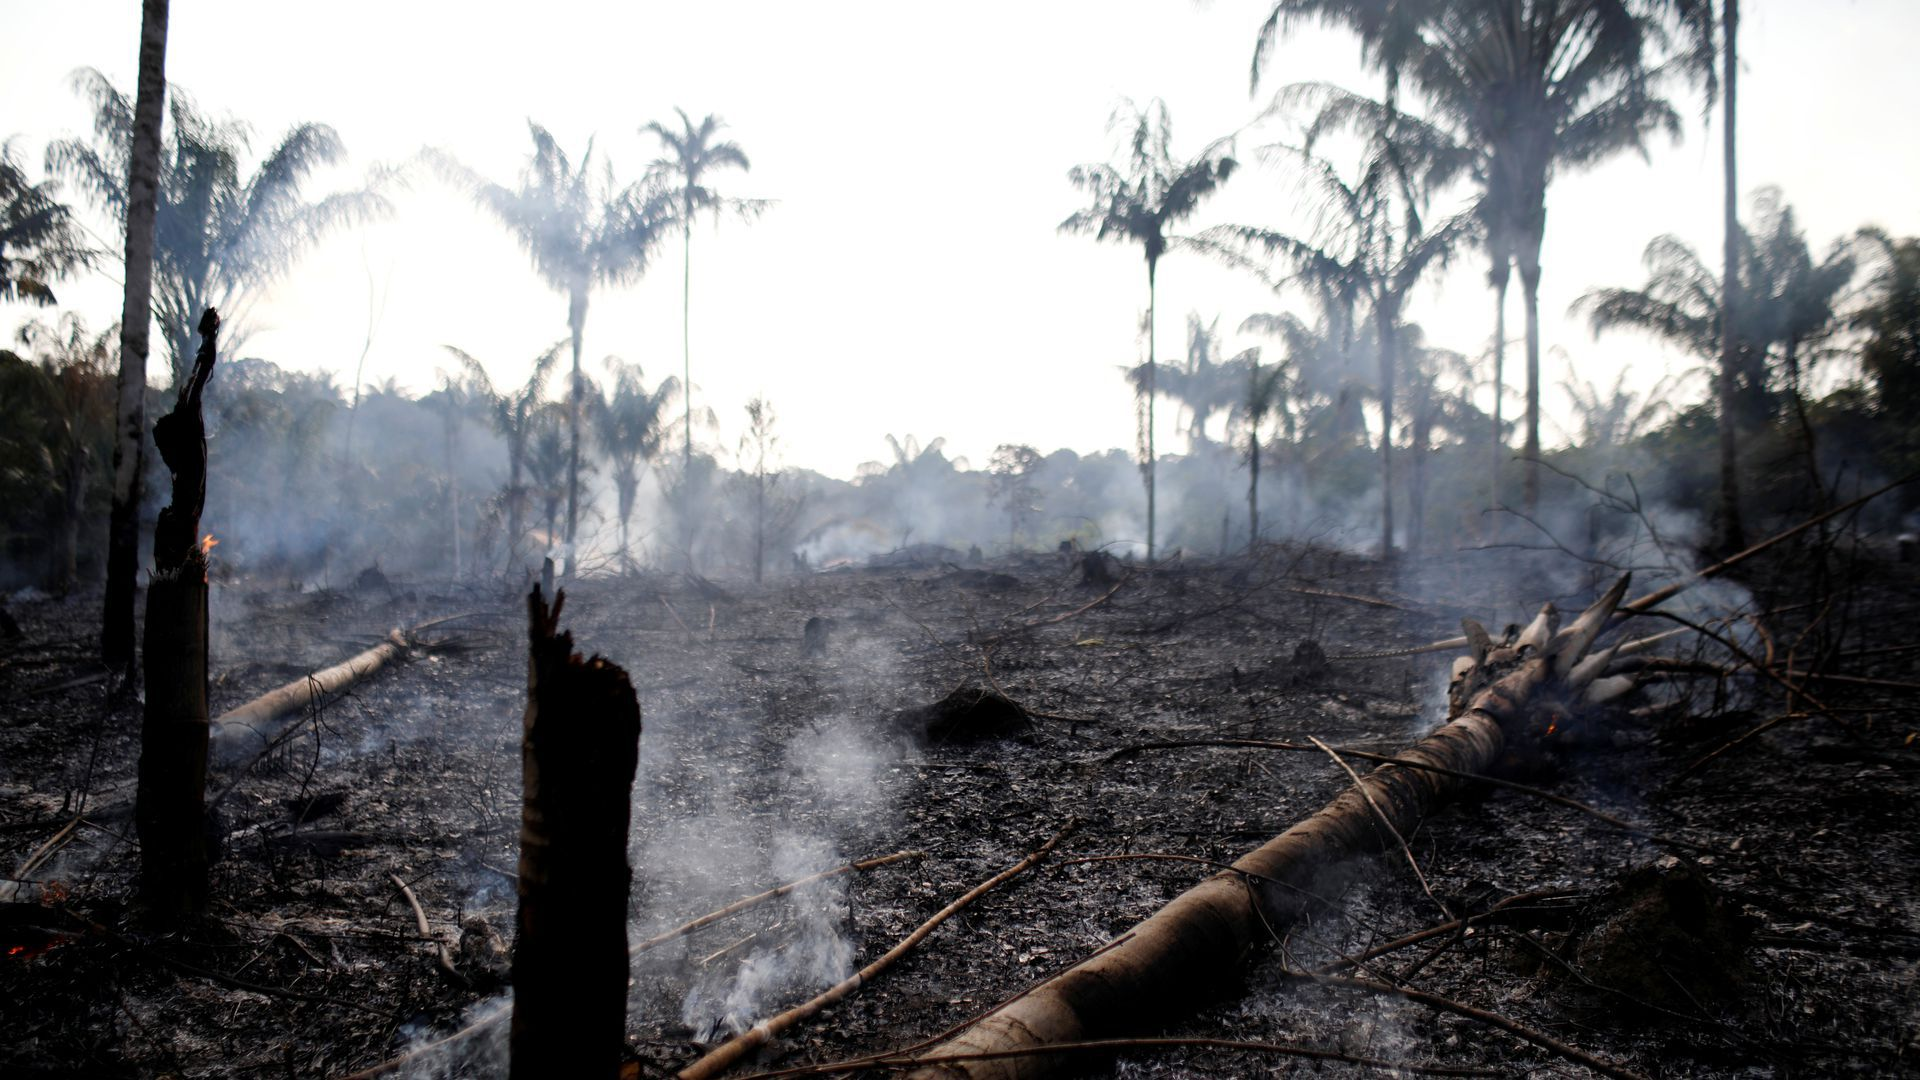 A charred trunk is seen on a tract of Amazon jungle that was recently burned by loggers and farmers in Brazil.